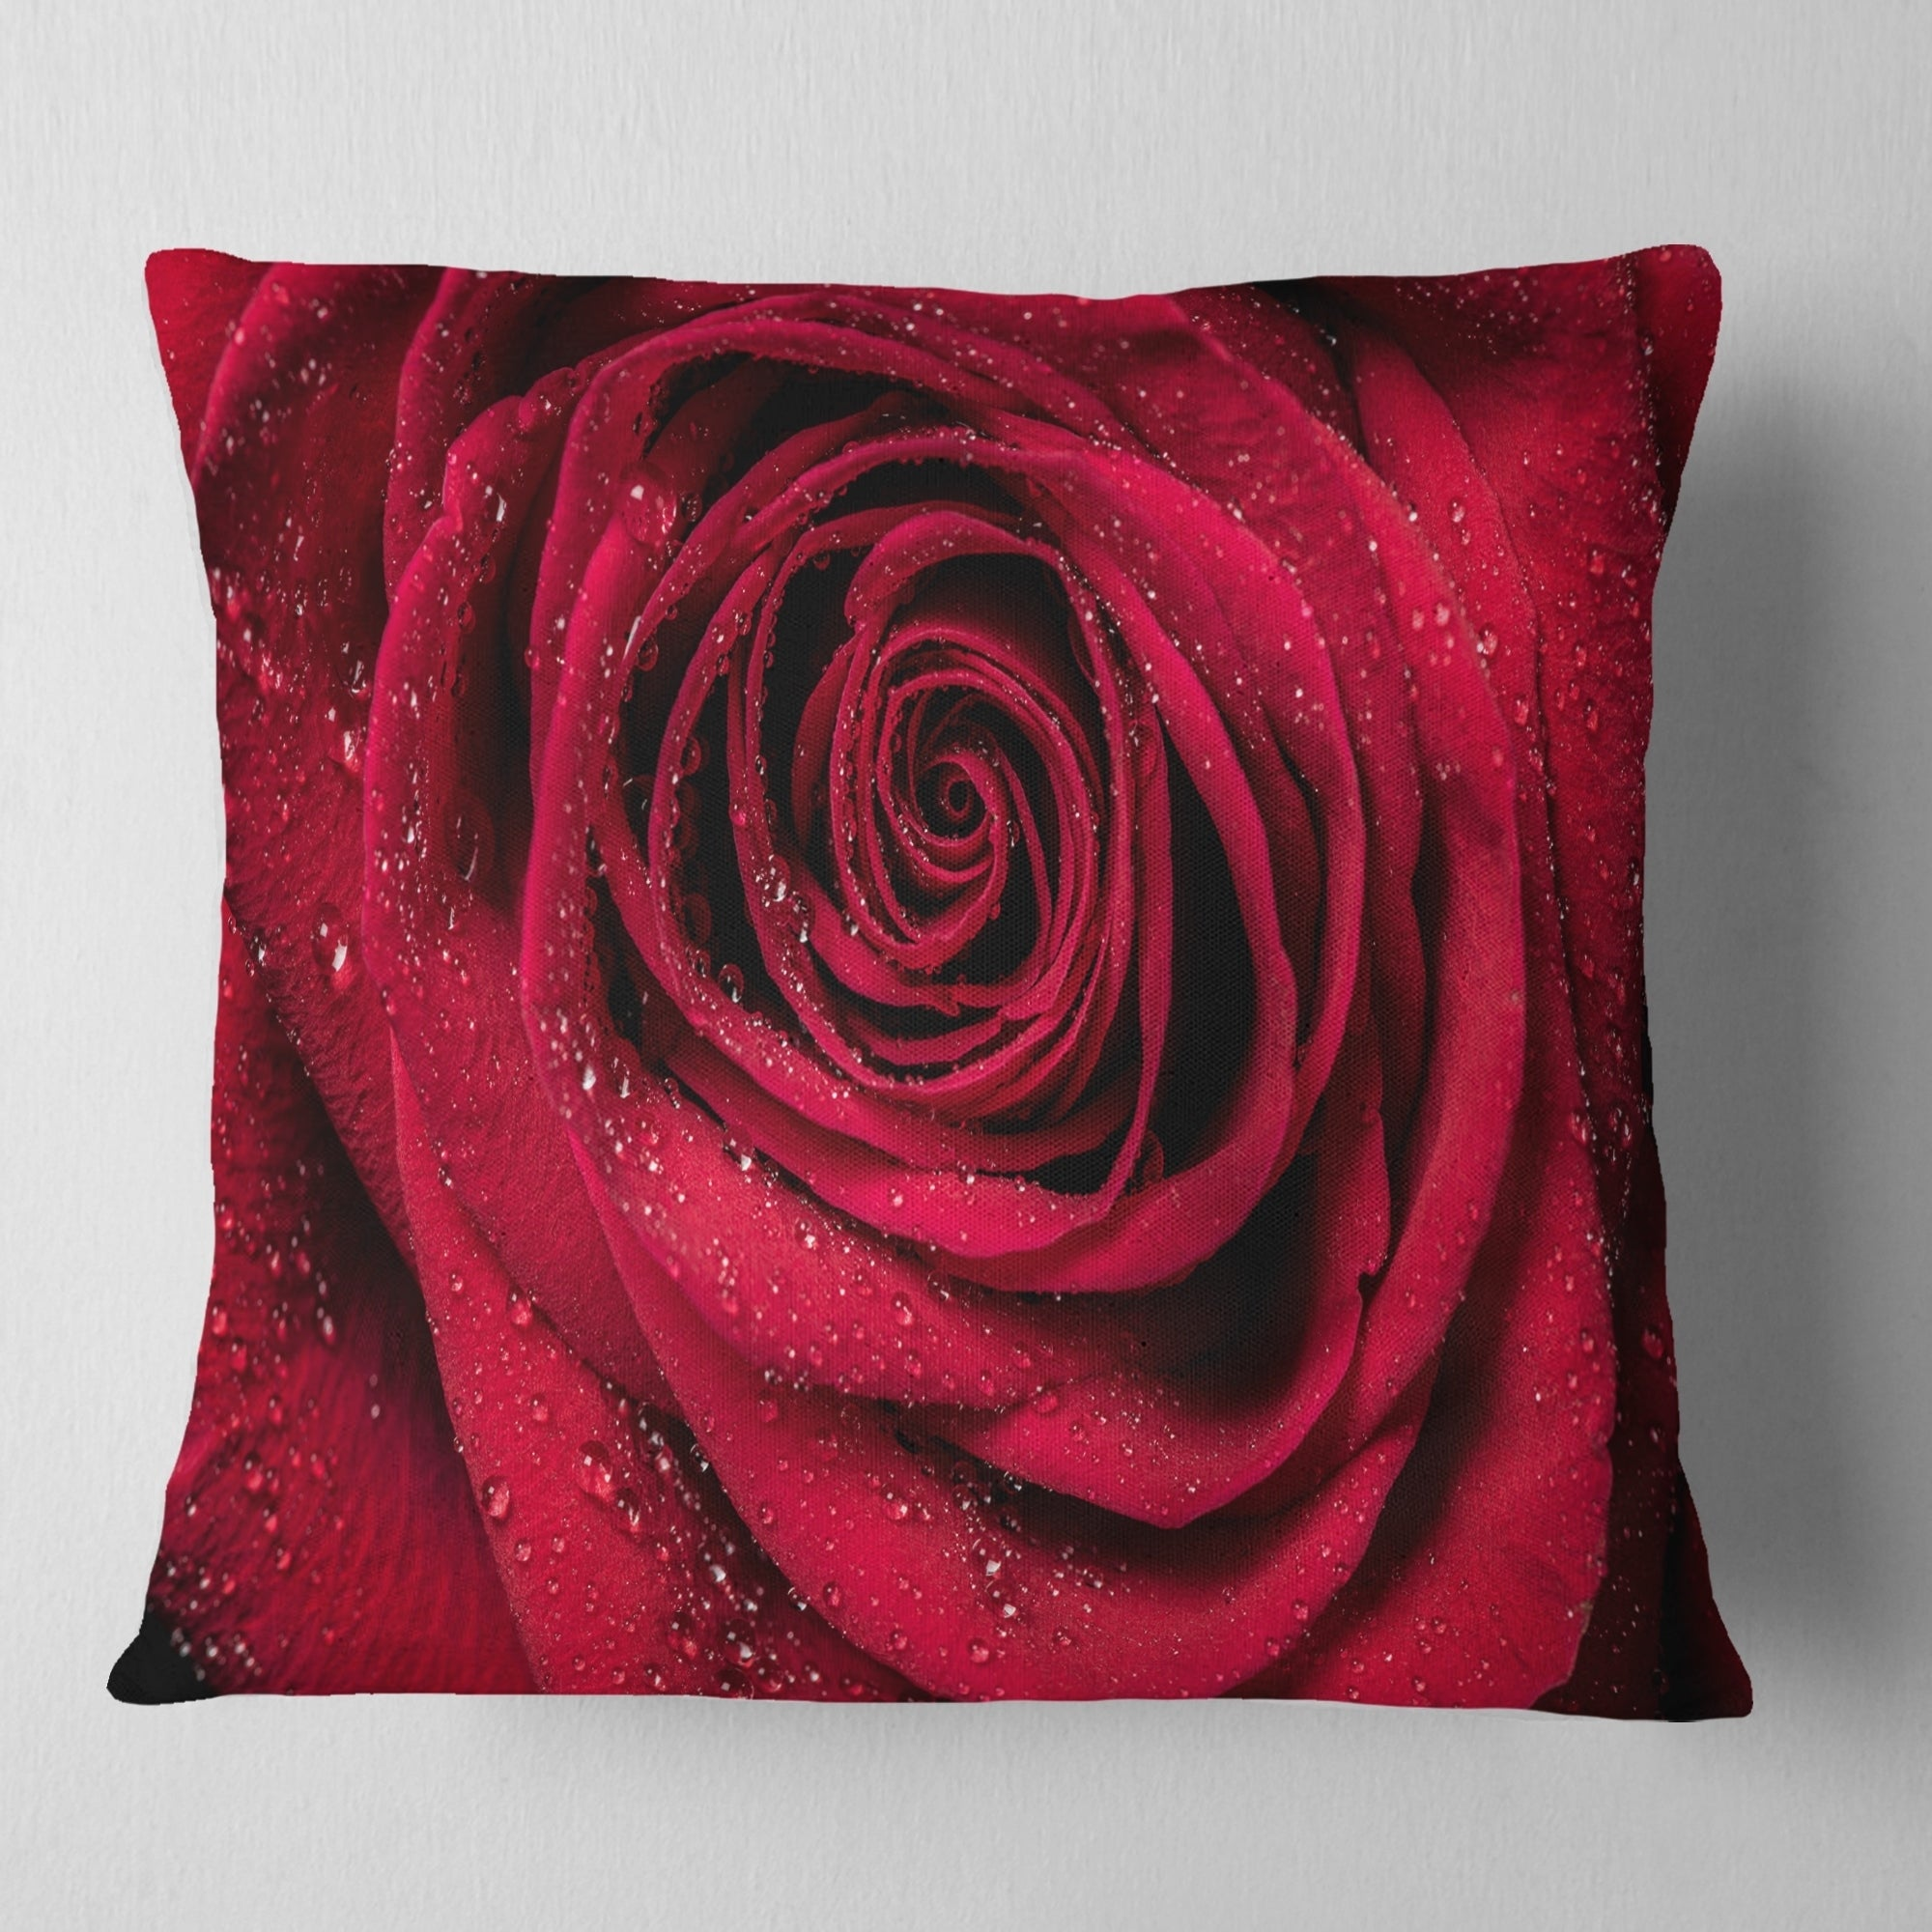 Designart Red Rose Petals With Rain Droplets Fl Throw Pillow On Free Shipping Orders Over 45 20890655